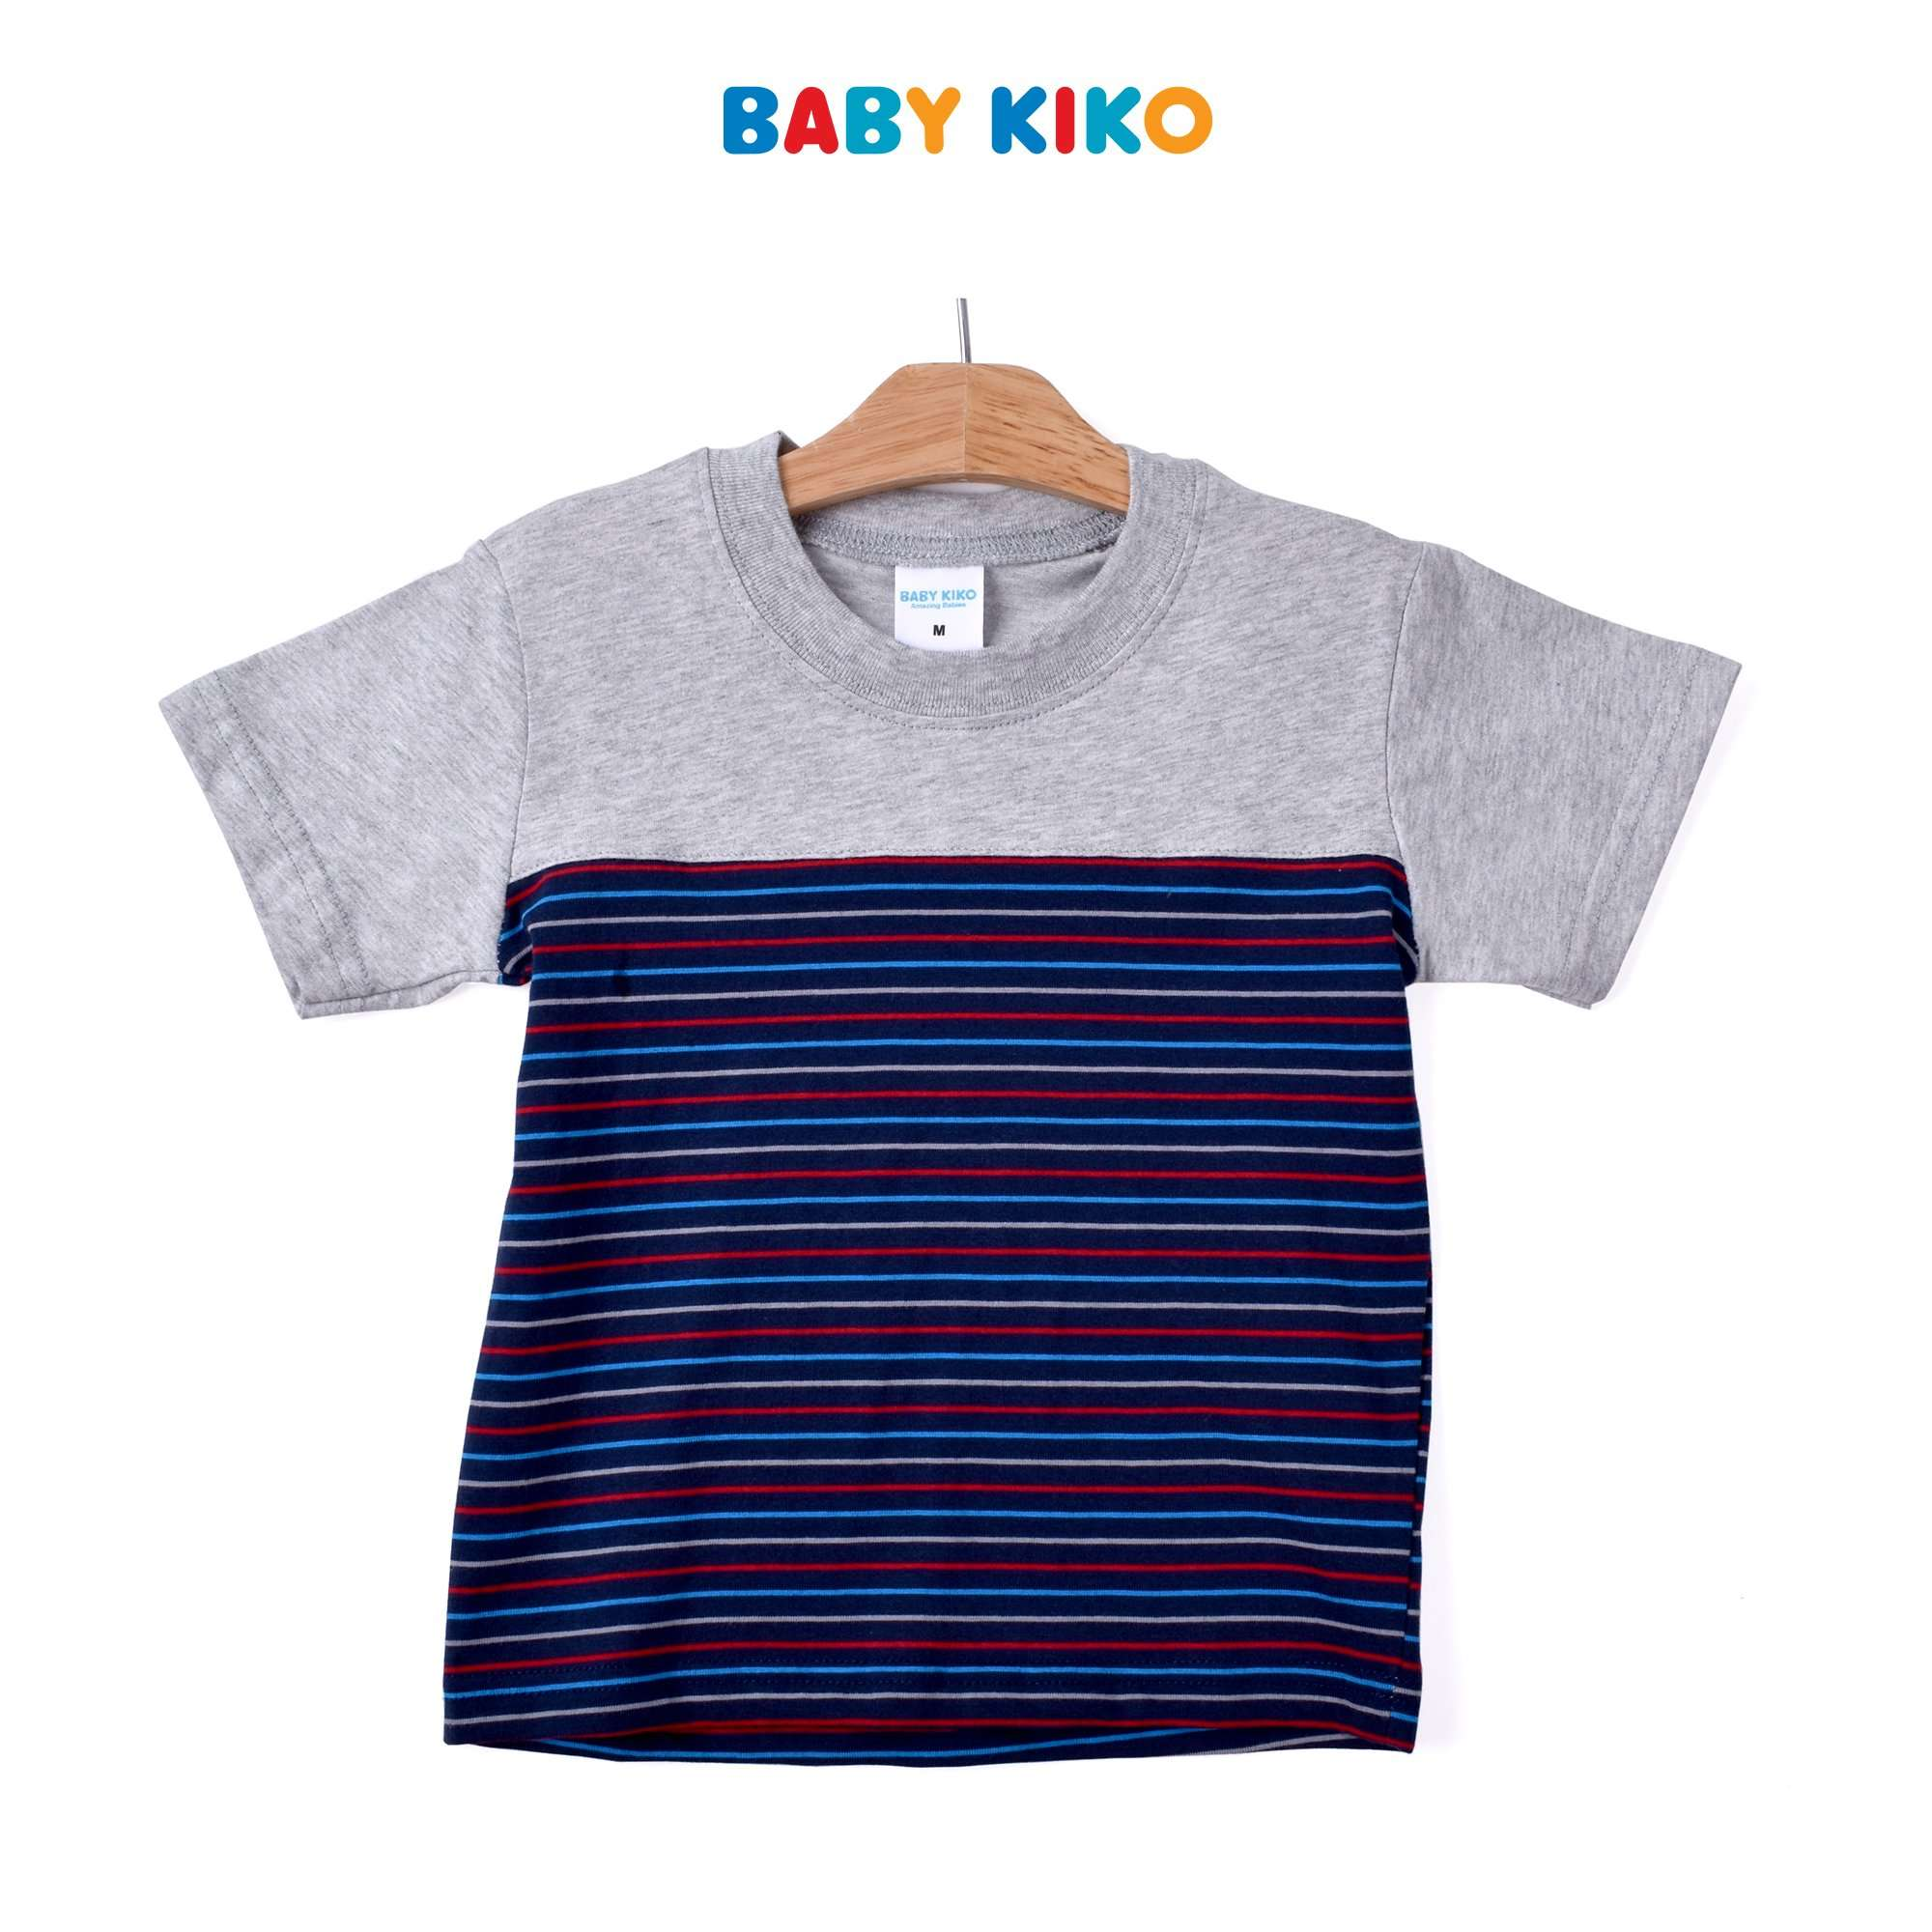 Baby KIKO Toddler Boy Short Sleeve Bermuda Suit- Melange 325193-412 : Buy Baby KIKO online at CMG.MY